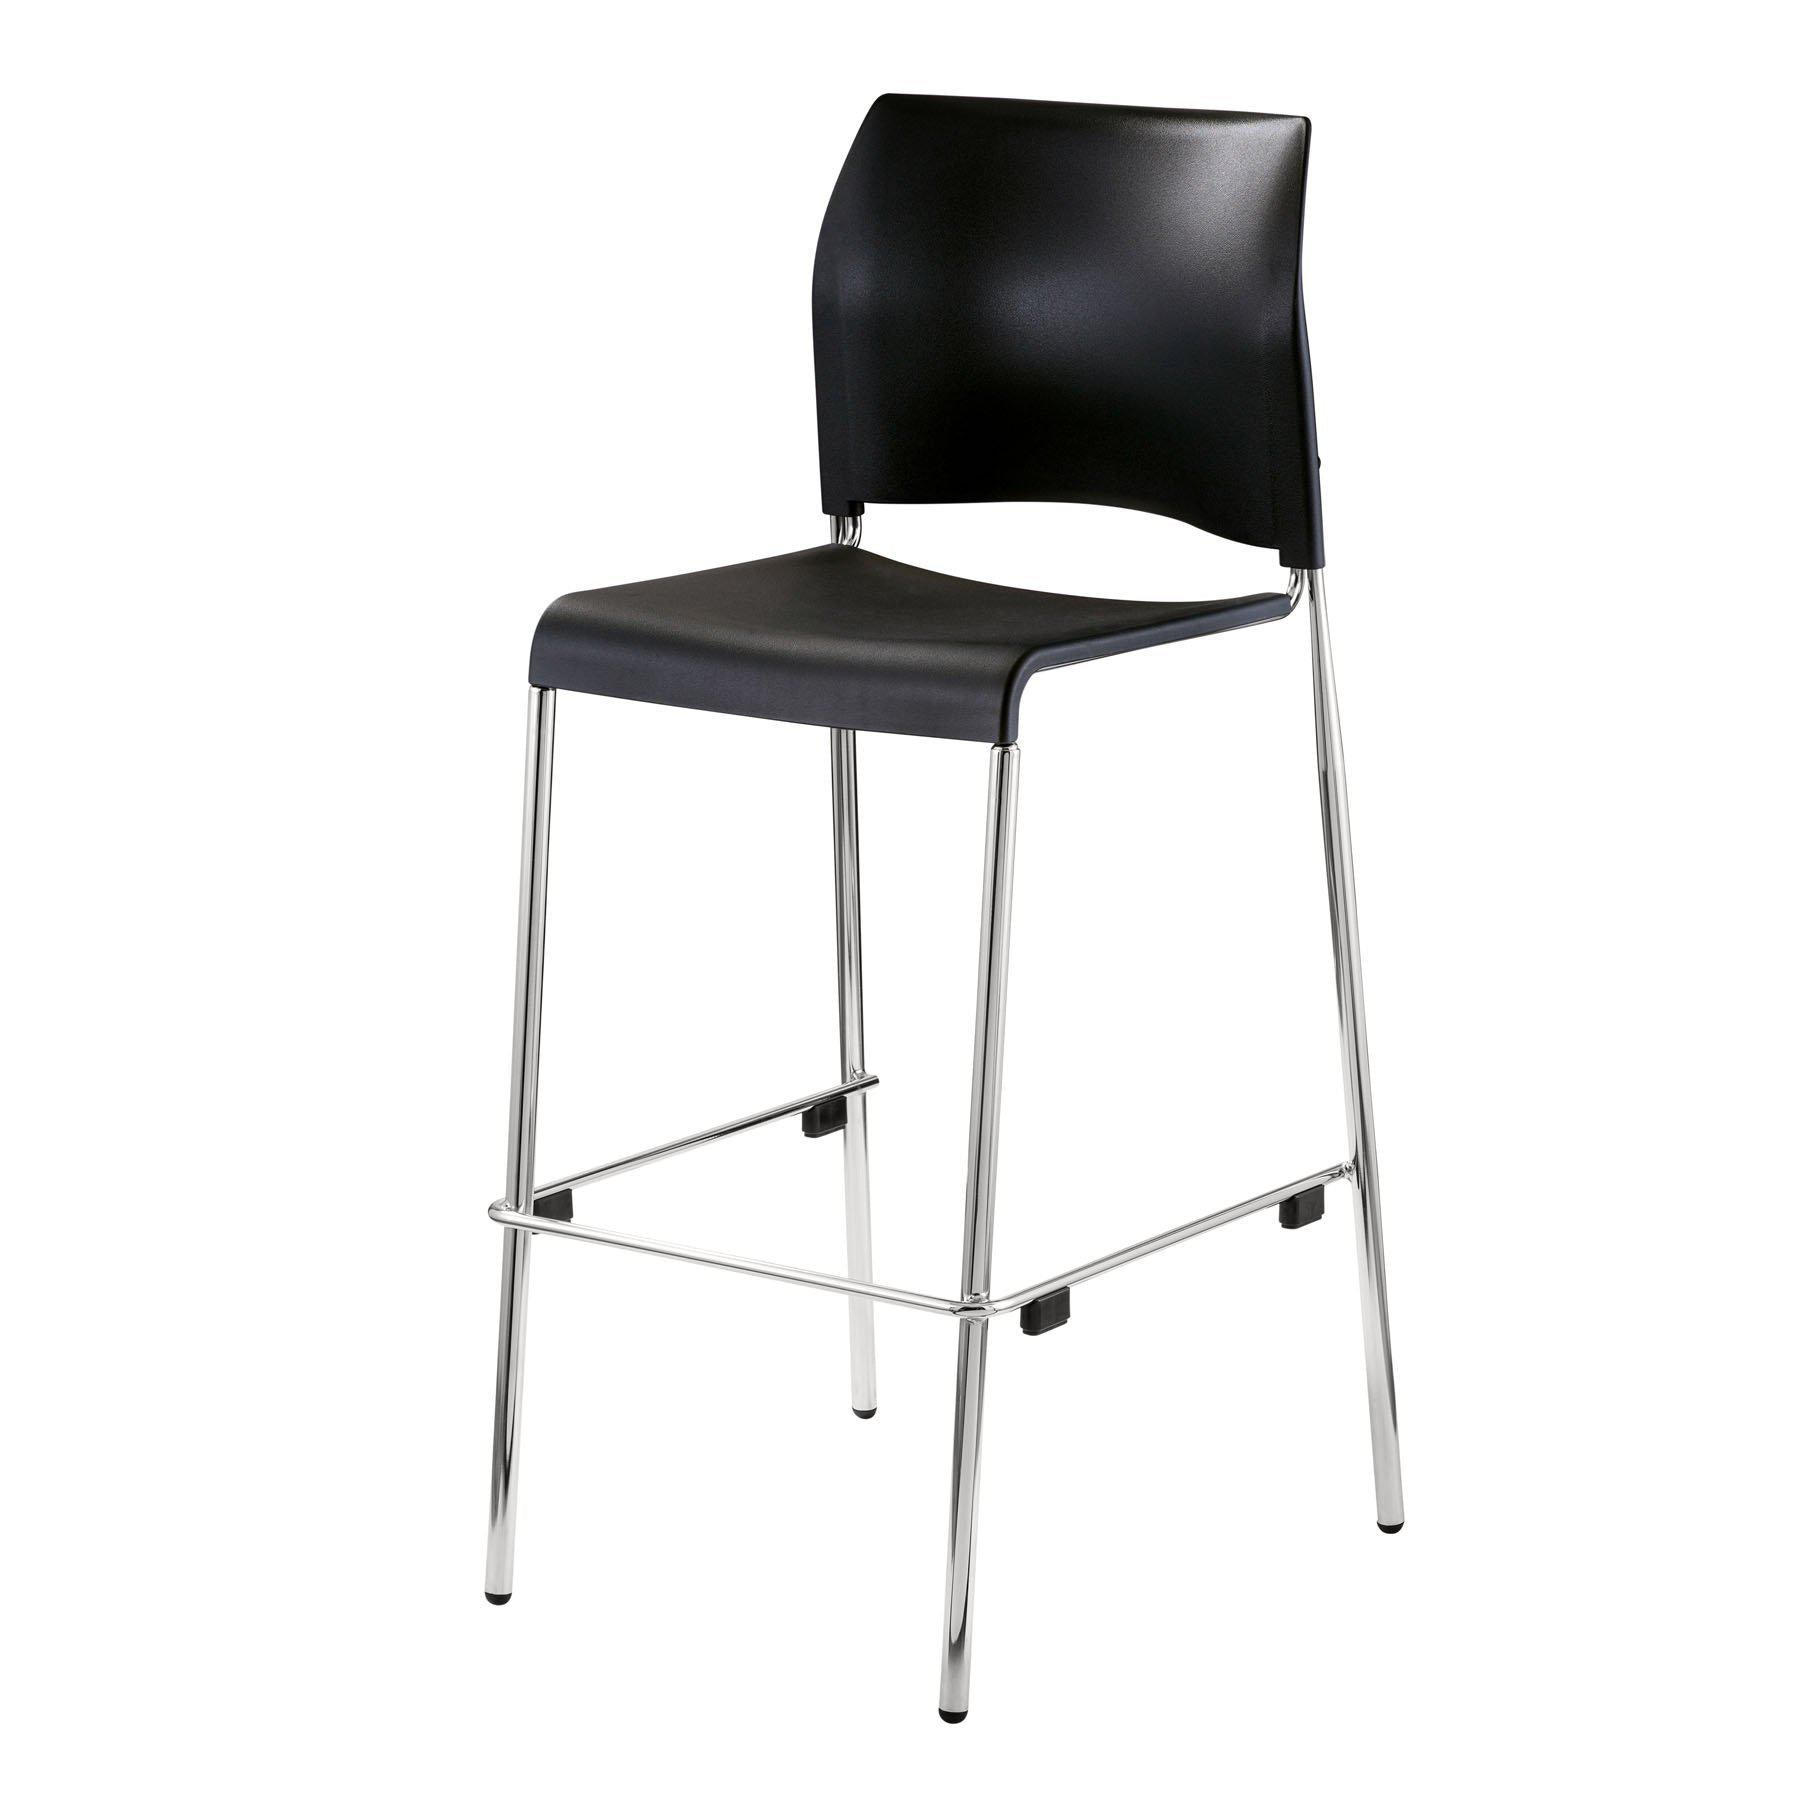 Cafetorium Bar Stool, Black Plastic Seat, Chrome Frame